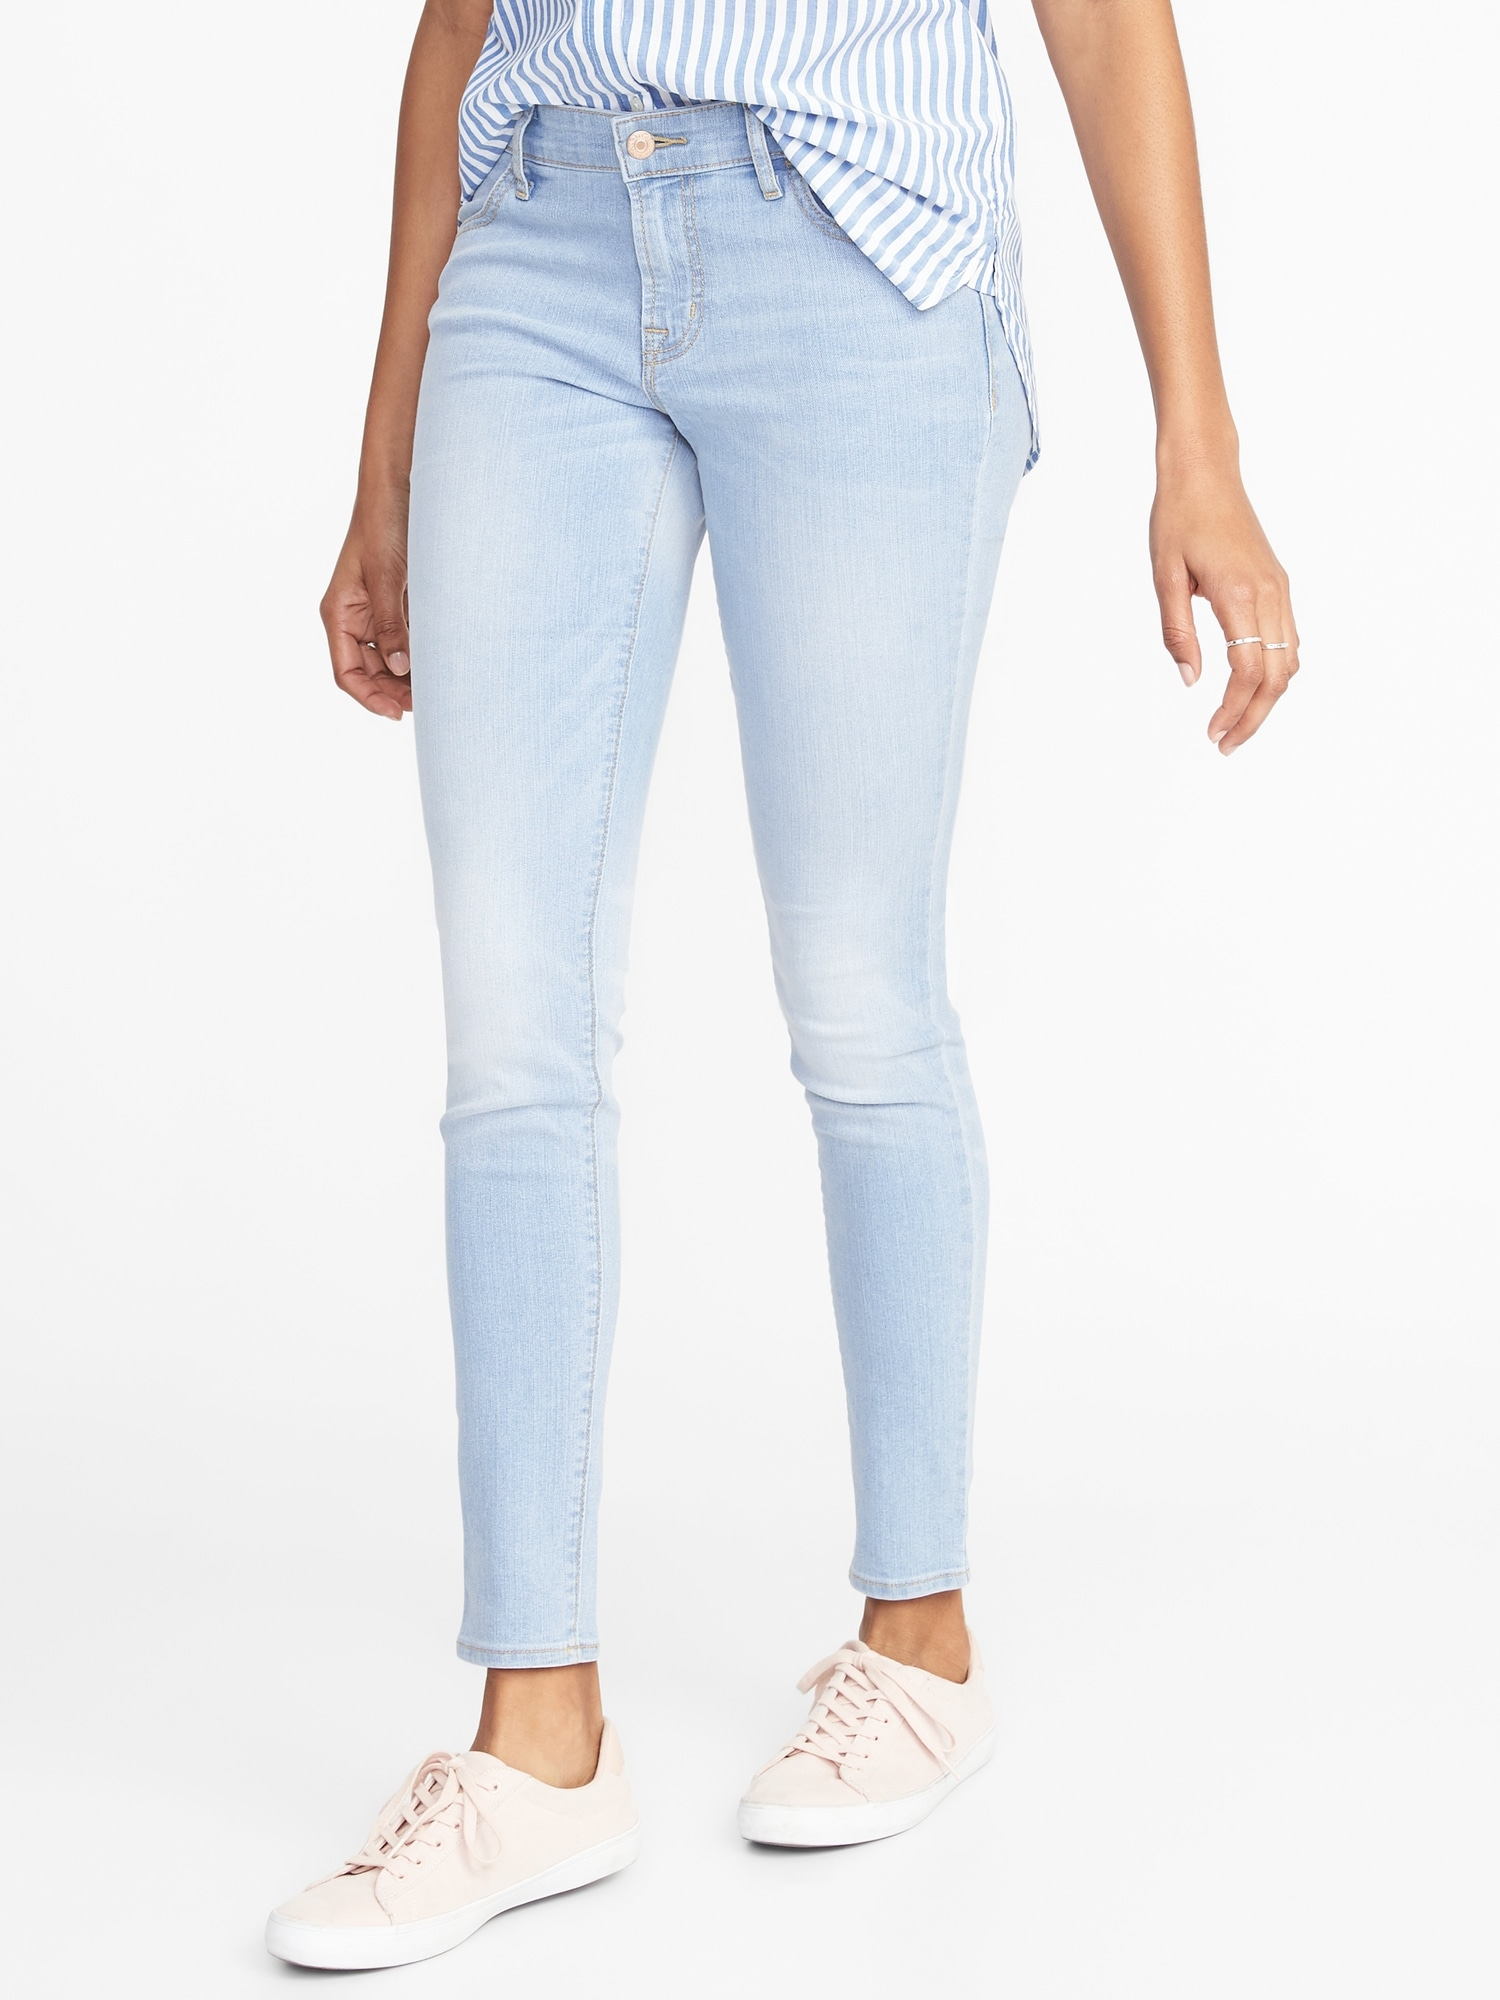 a86b86114f2 Mid-Rise Super Skinny Jeans for Women